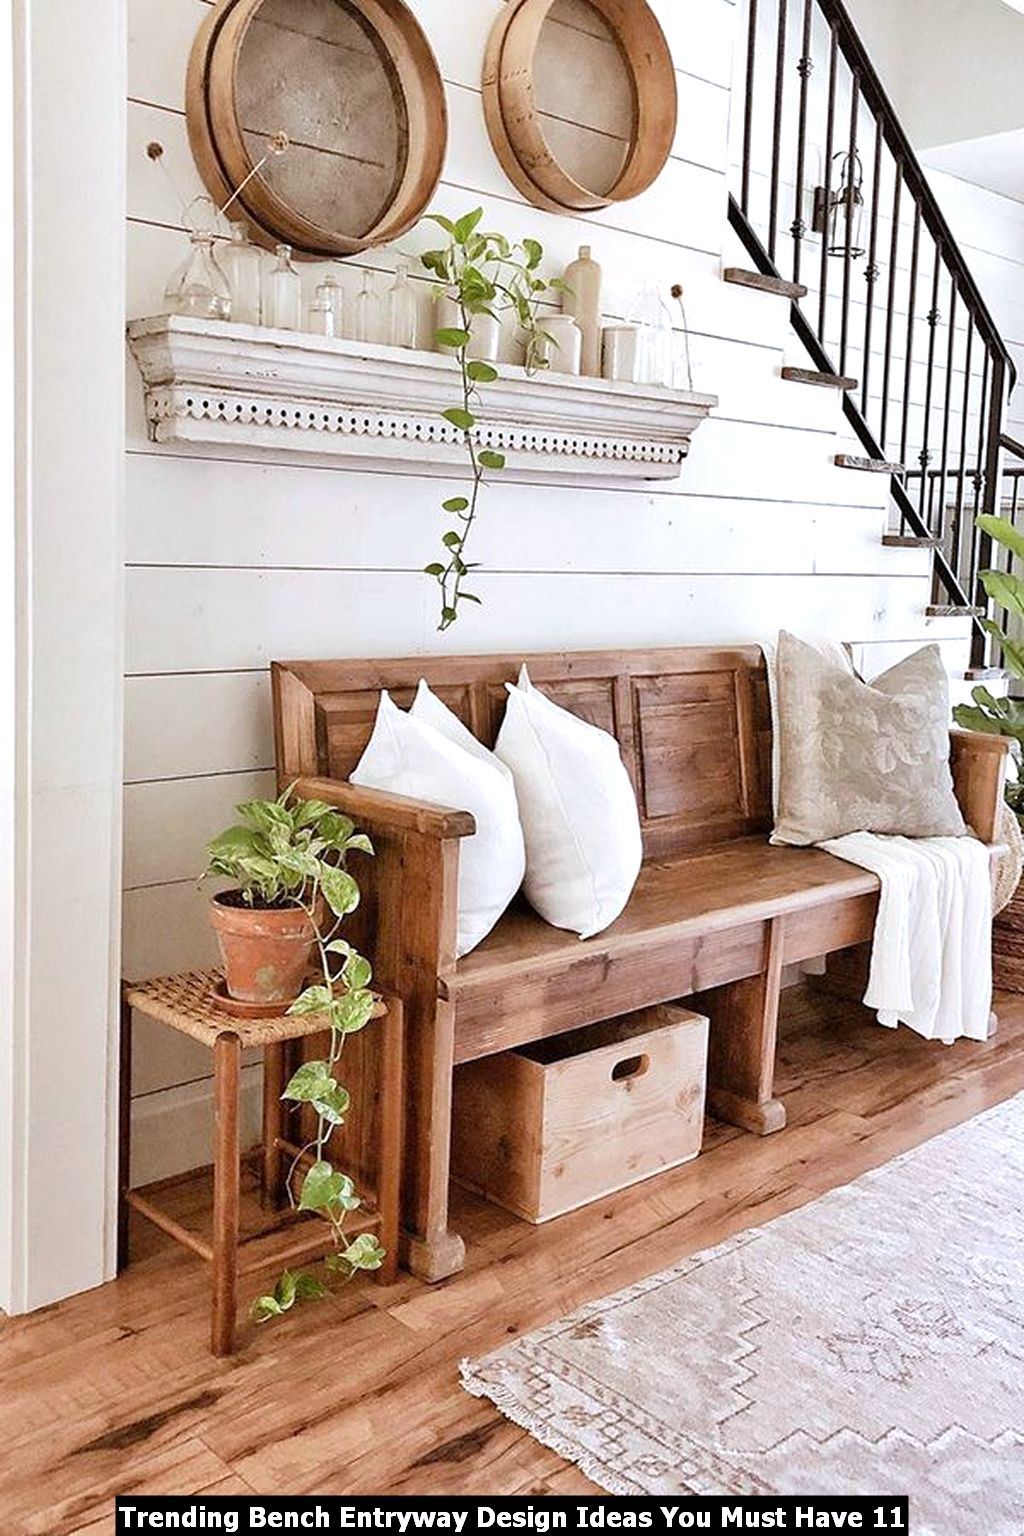 Trending Bench Entryway Design Ideas You Must Have 11